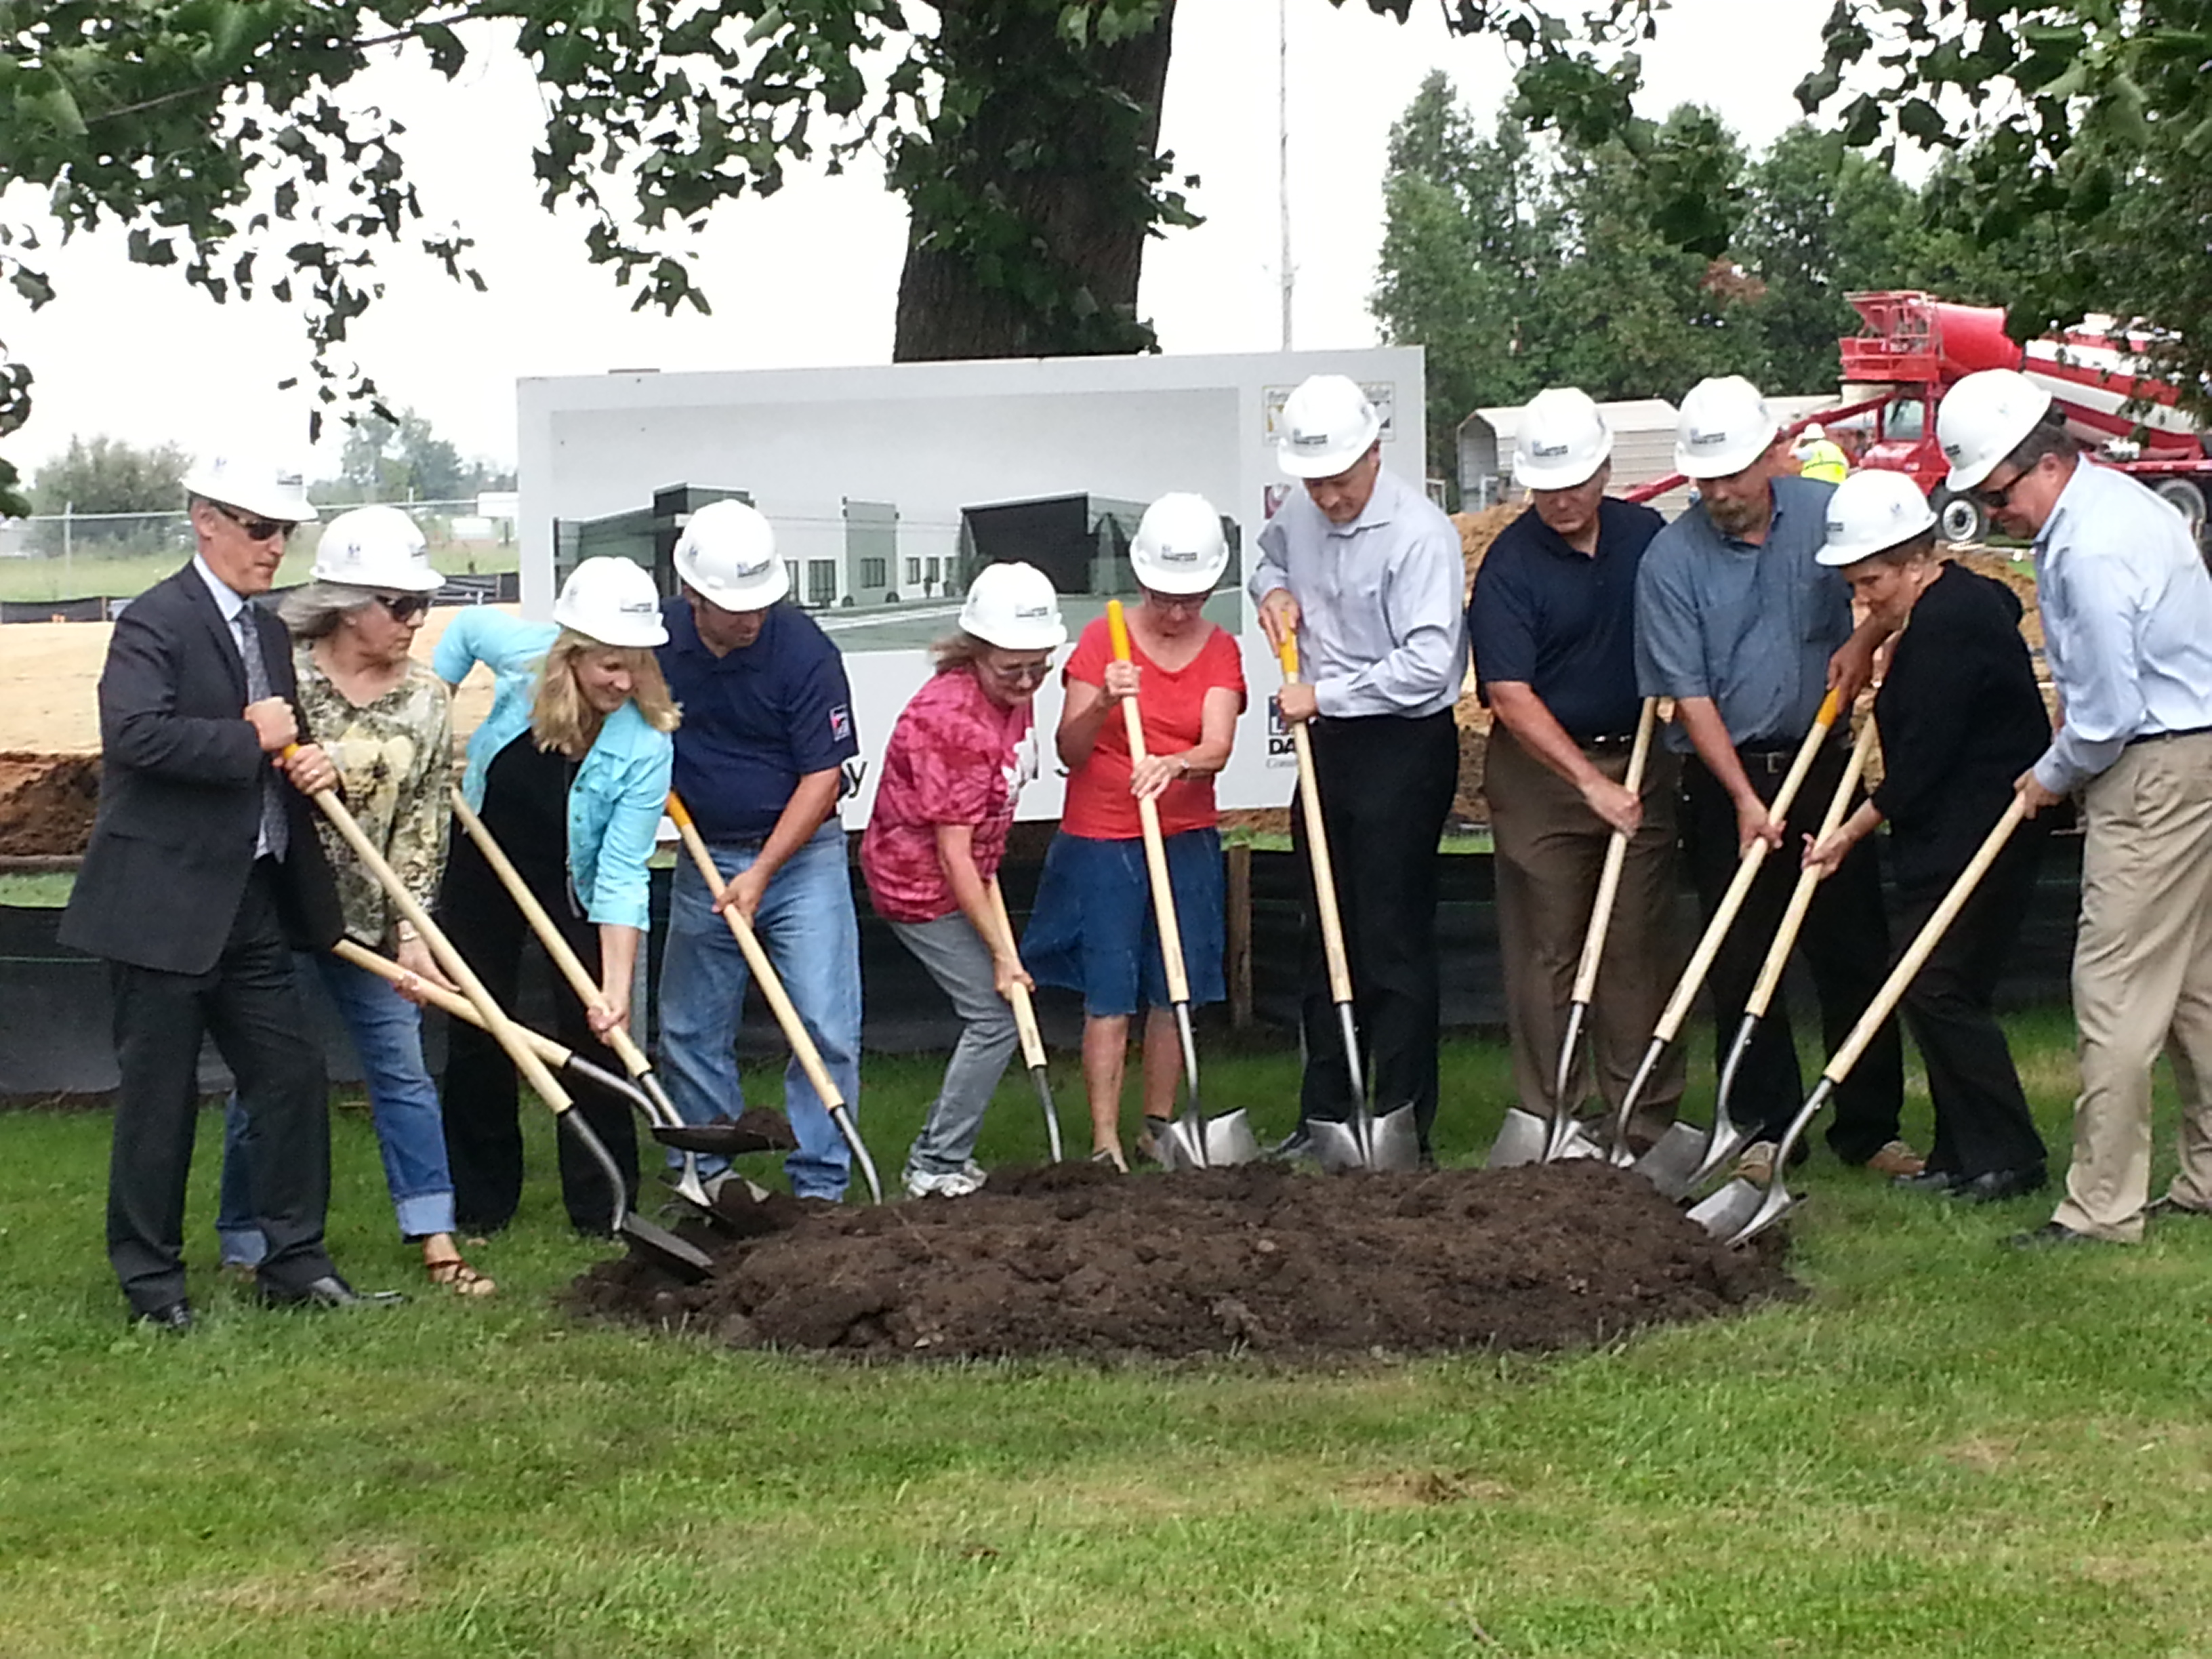 Officials With Shovels Break Ground For New Animal Shelter